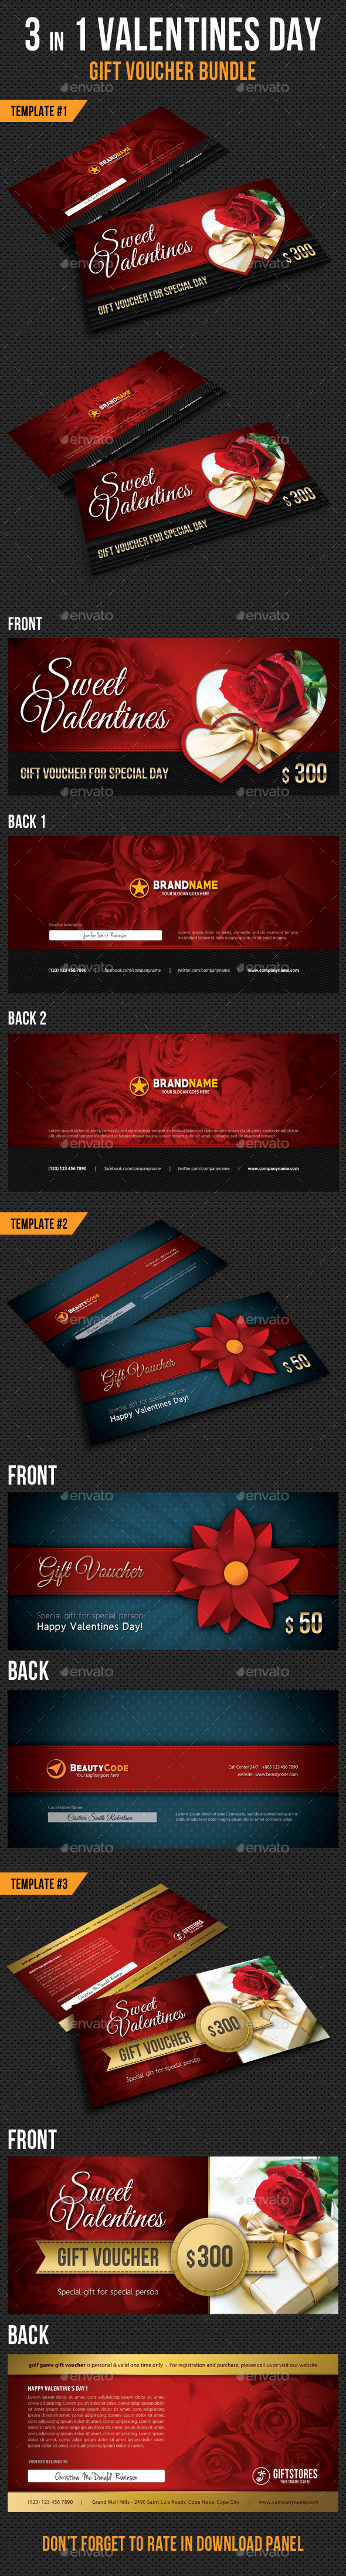 3 in 1 Valentines Day Gift Voucher Bundle - Cards & Invites Print Templates